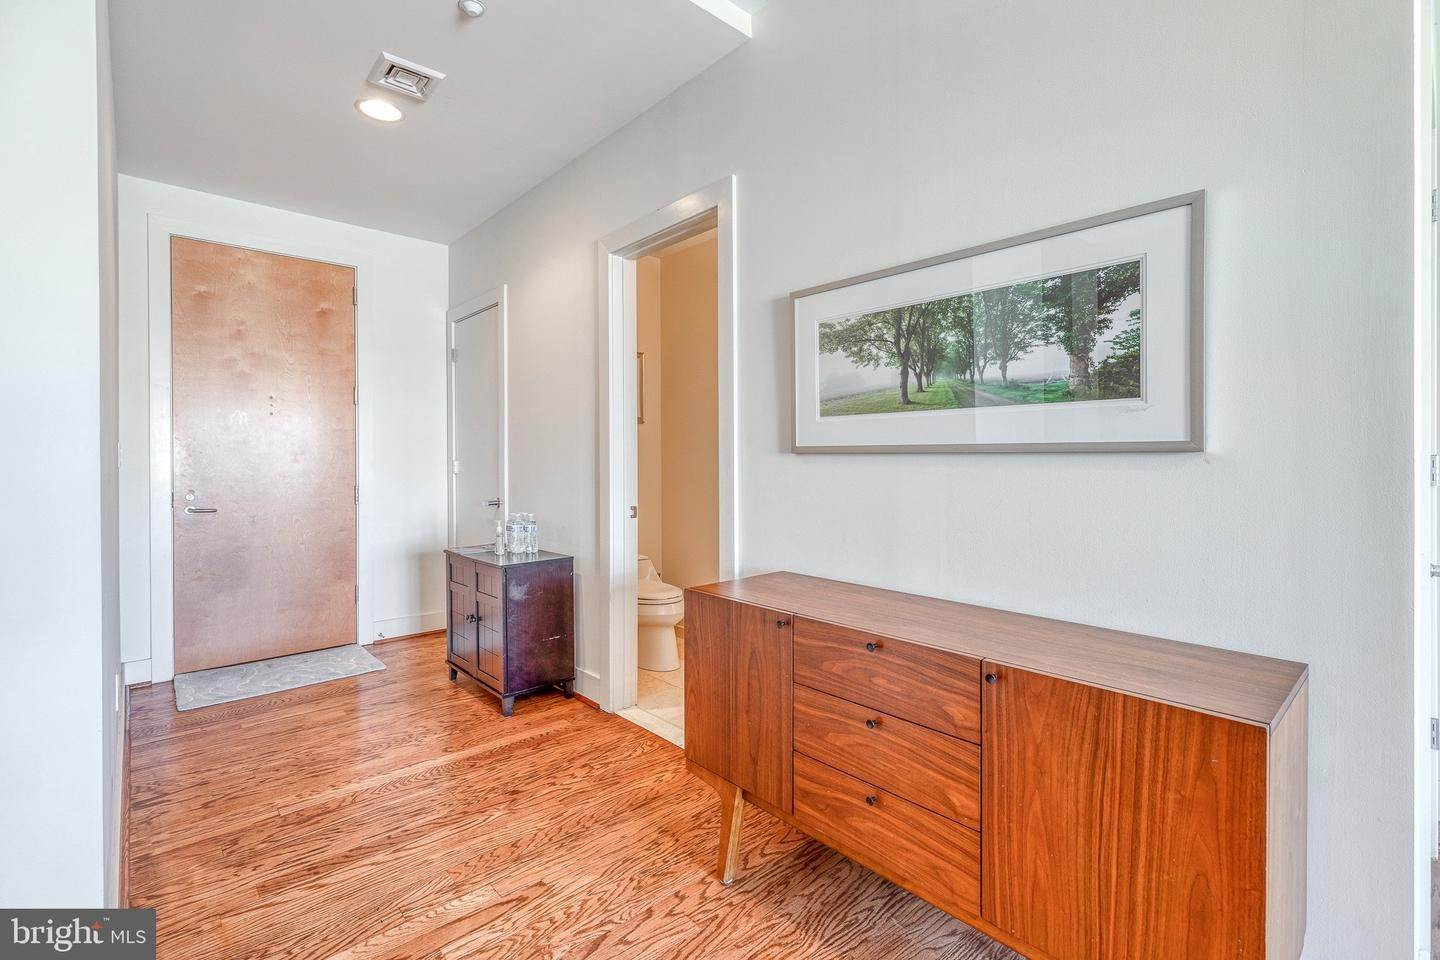 4. Apartments for Sale at 23 S 23RD ST #5B Philadelphia, Pennsylvania 19103 United States